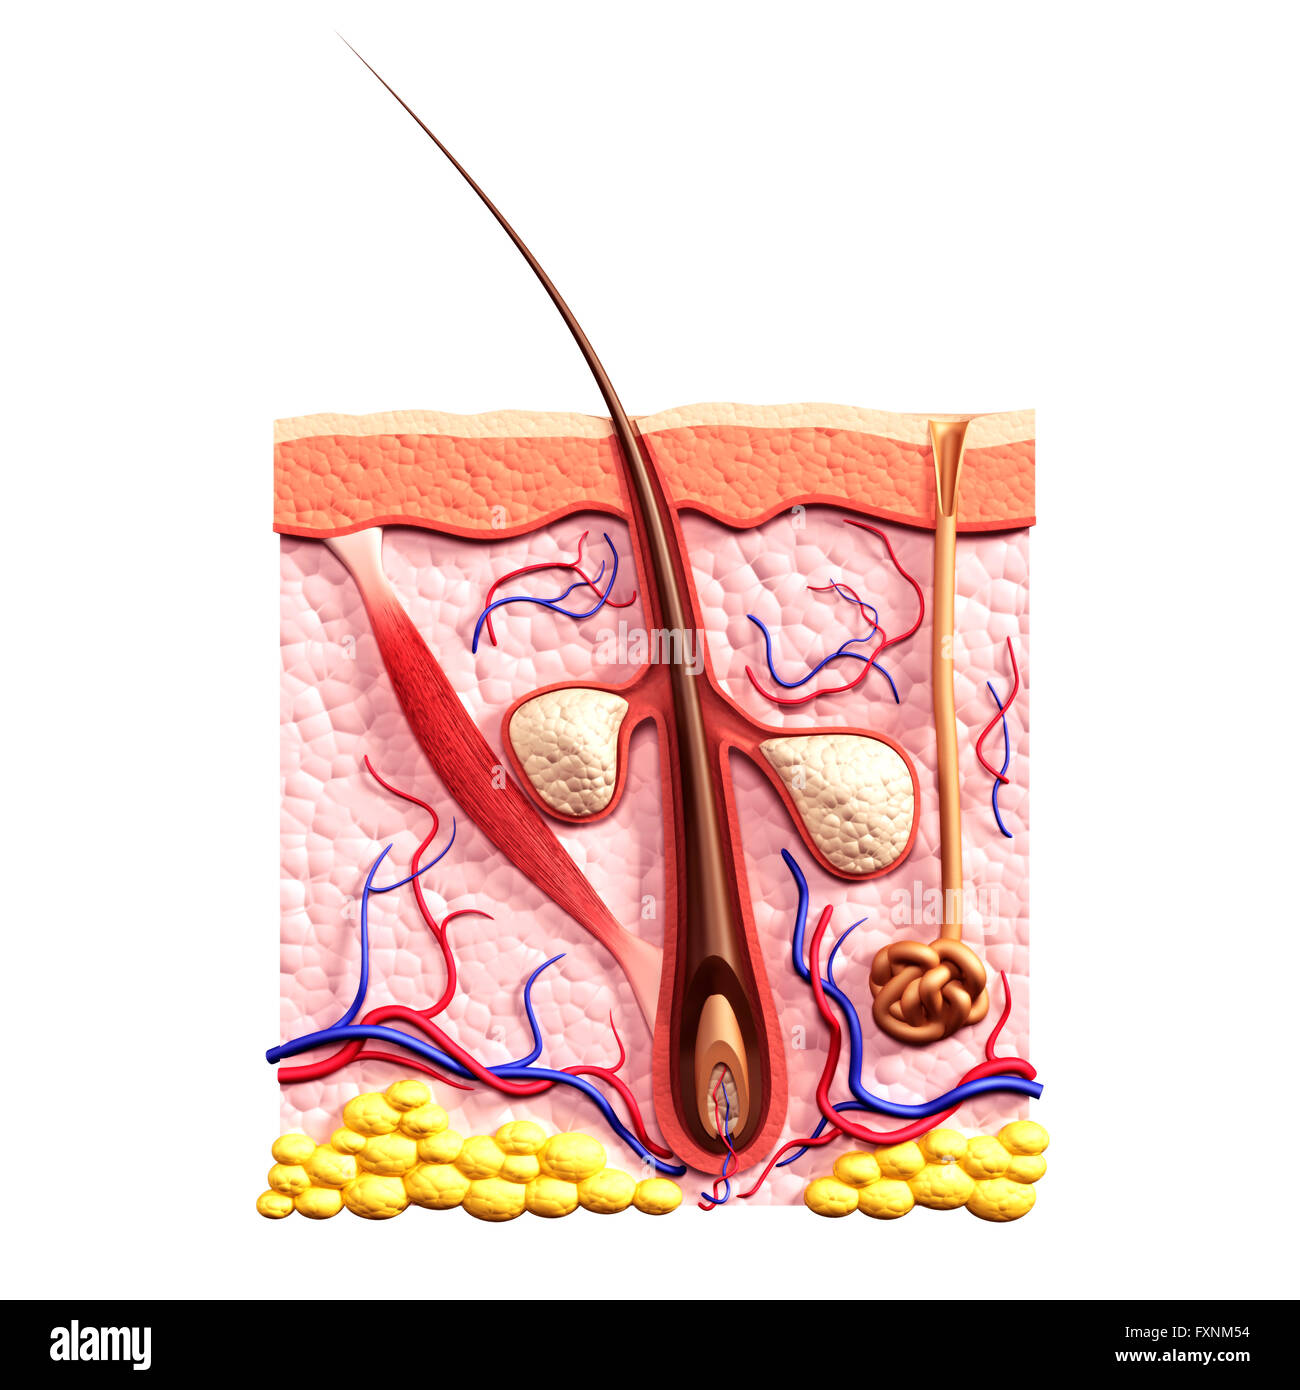 Cross section of skin showing hair follicle, sebaceous glands, sweat gland and arrector pili muscle structure, 3D - Stock Image